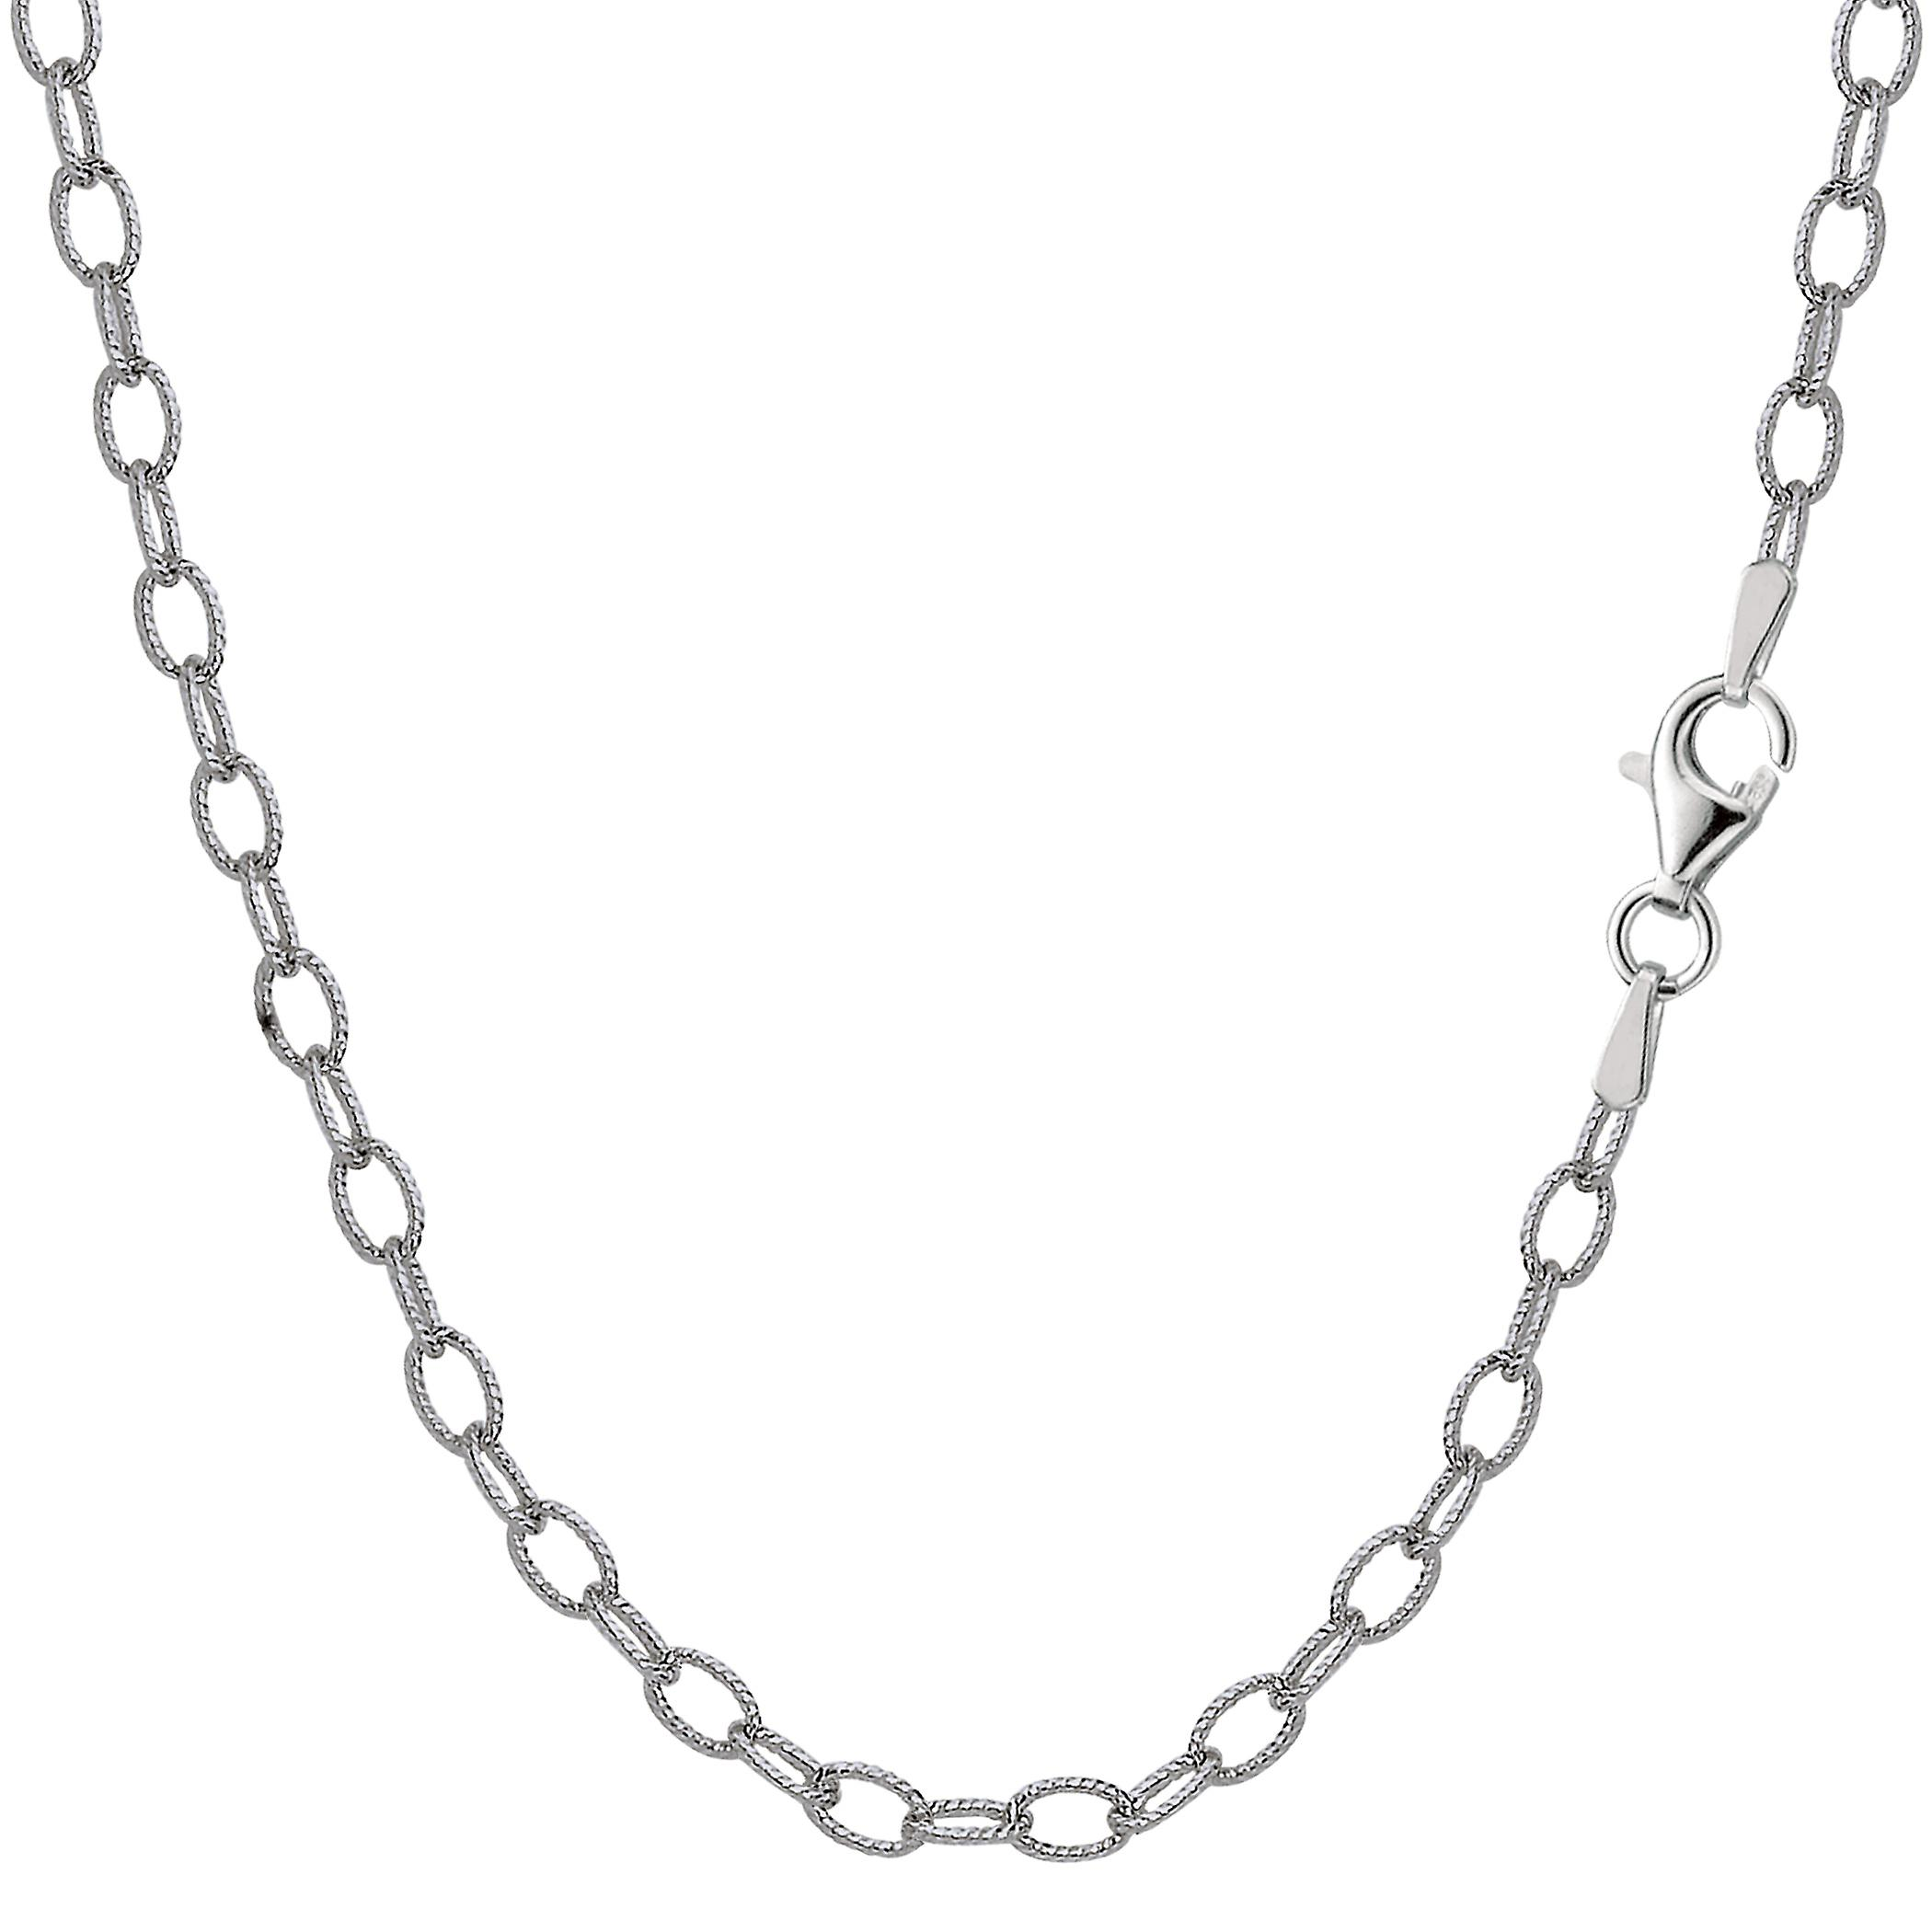 Sterling argent Rhodium Plated Oval Rolo Chain Necklace, 3.5mm